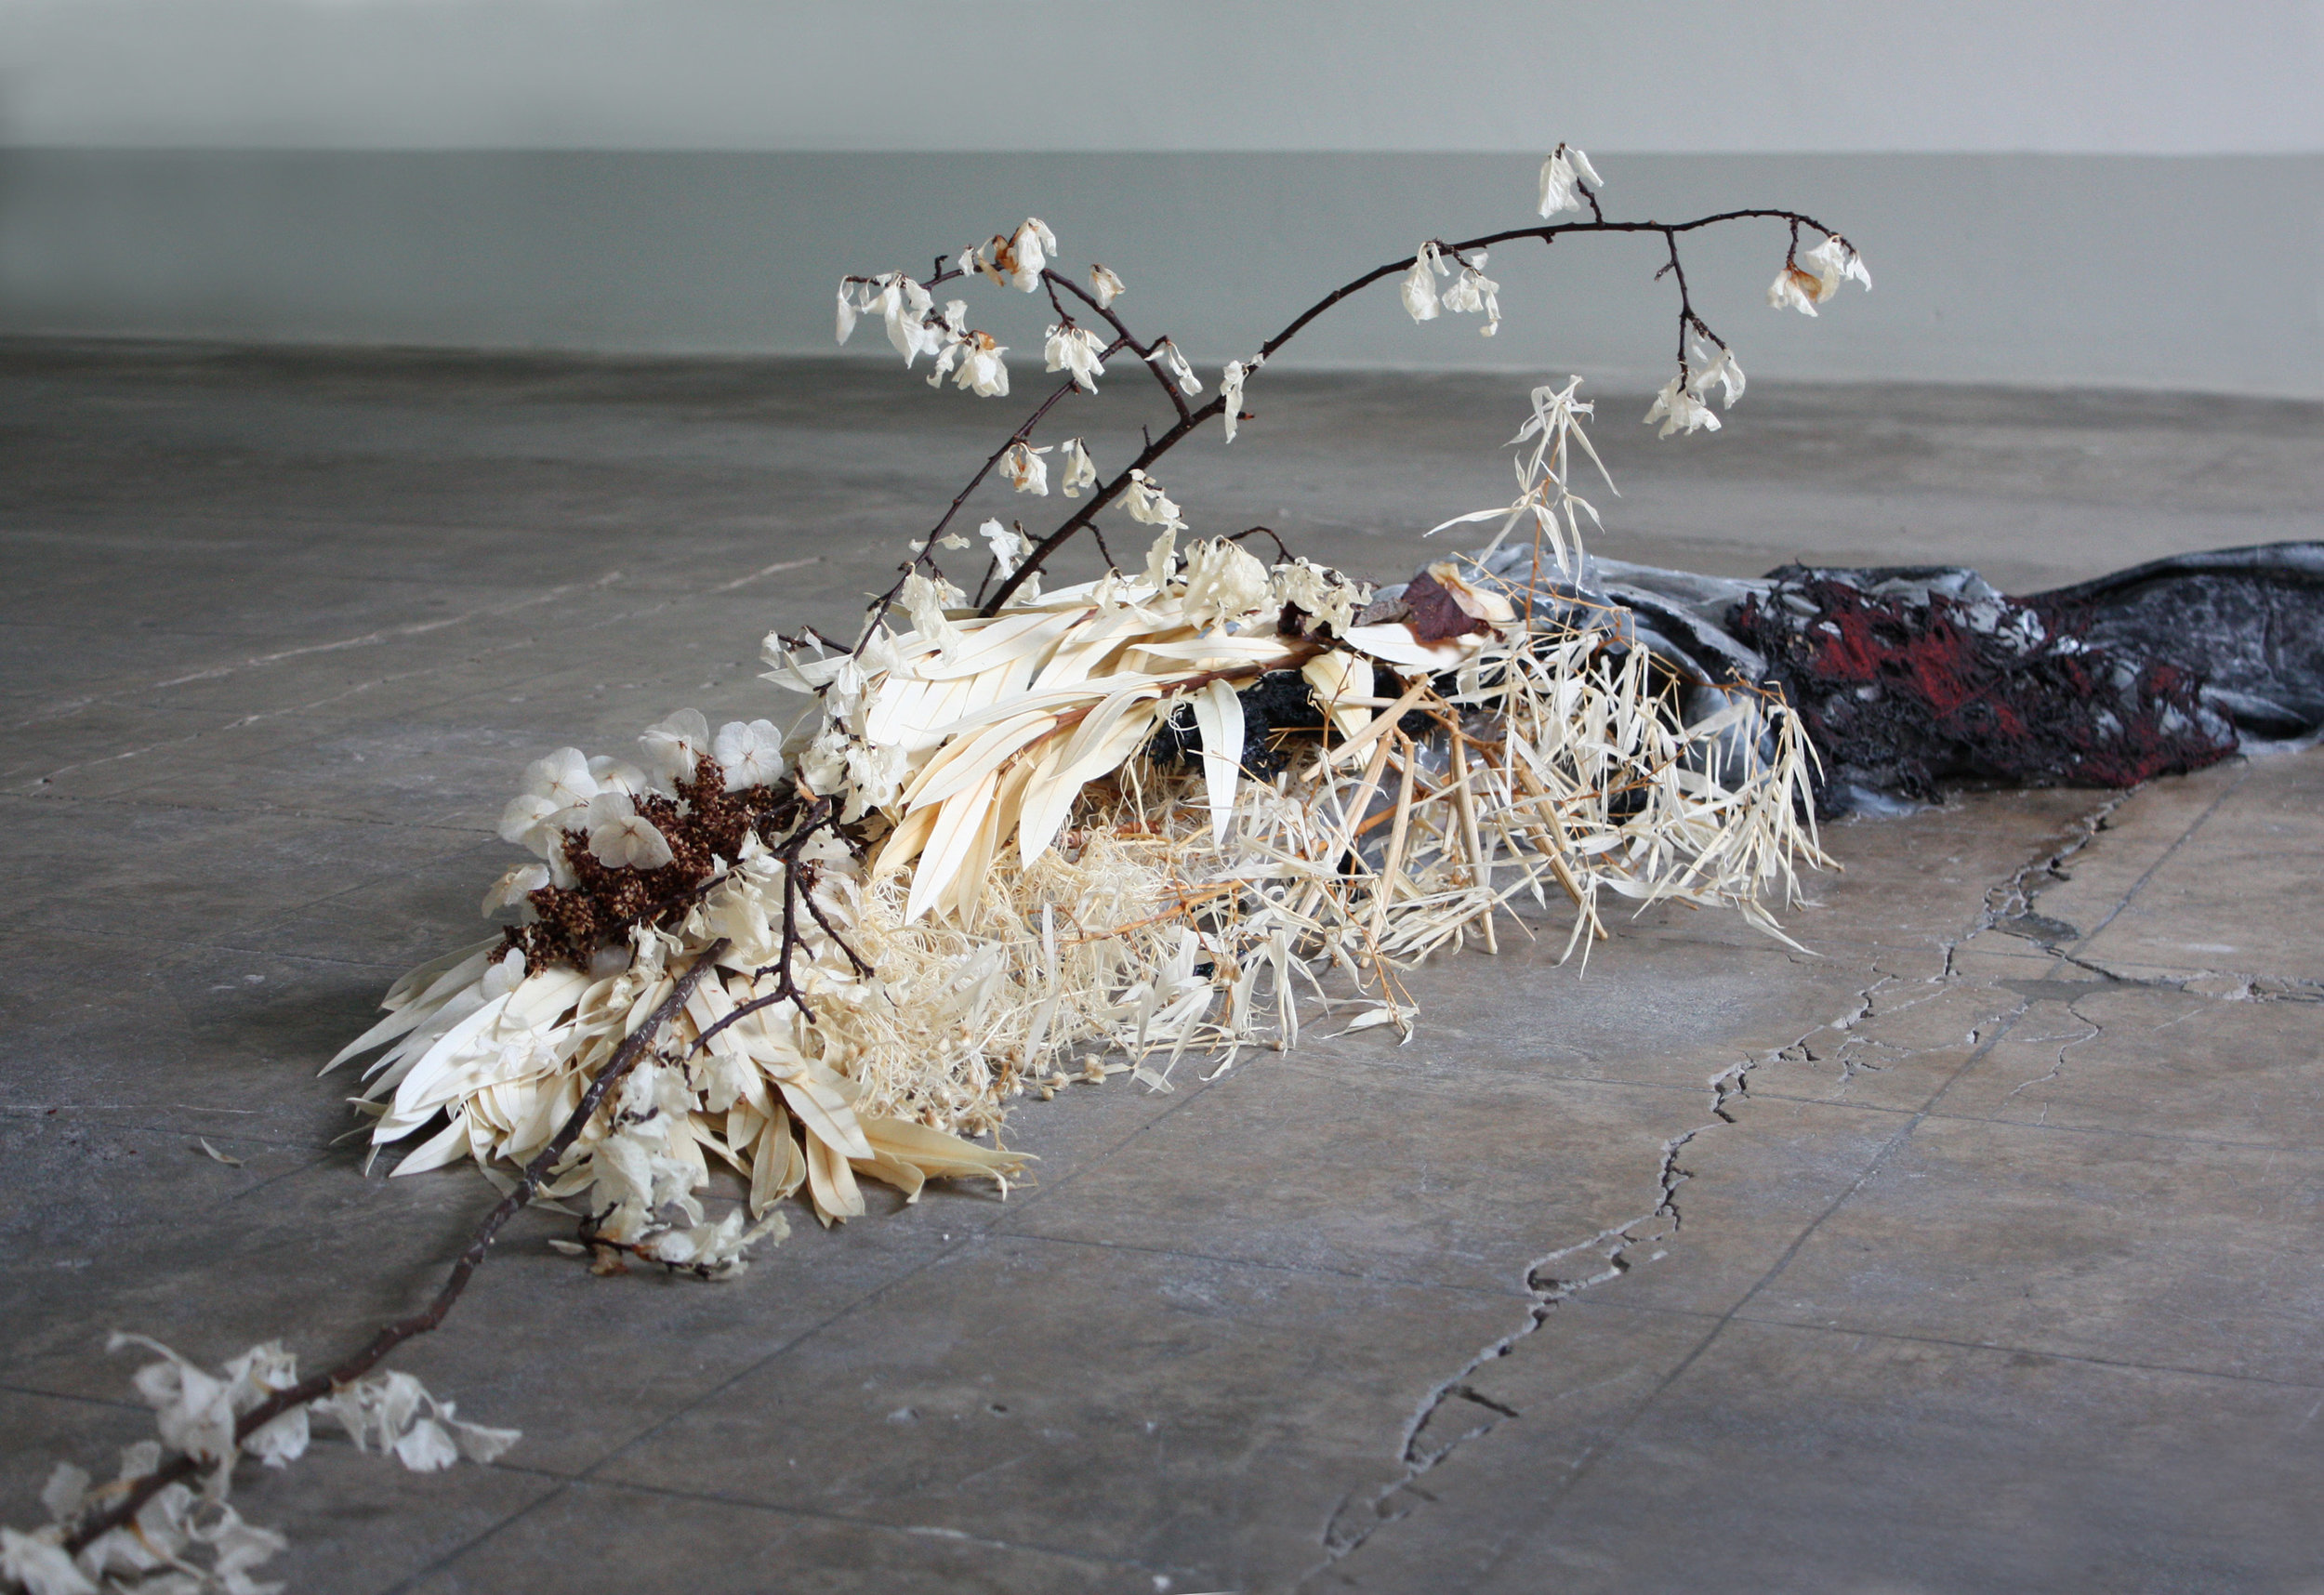 Generous Images Unable To Reach   Plants processed by removing chlorophyll, a deceased person's clothing regenerated into textile fibres and later crystallized in wellness salts, silicon cast of the person's clothing items before regeneration, materially reversed polyester clothing, materially reversed plastic components from exteroceptive sensors used in humanoid robotics, 2018  Photo: Luca Vanello